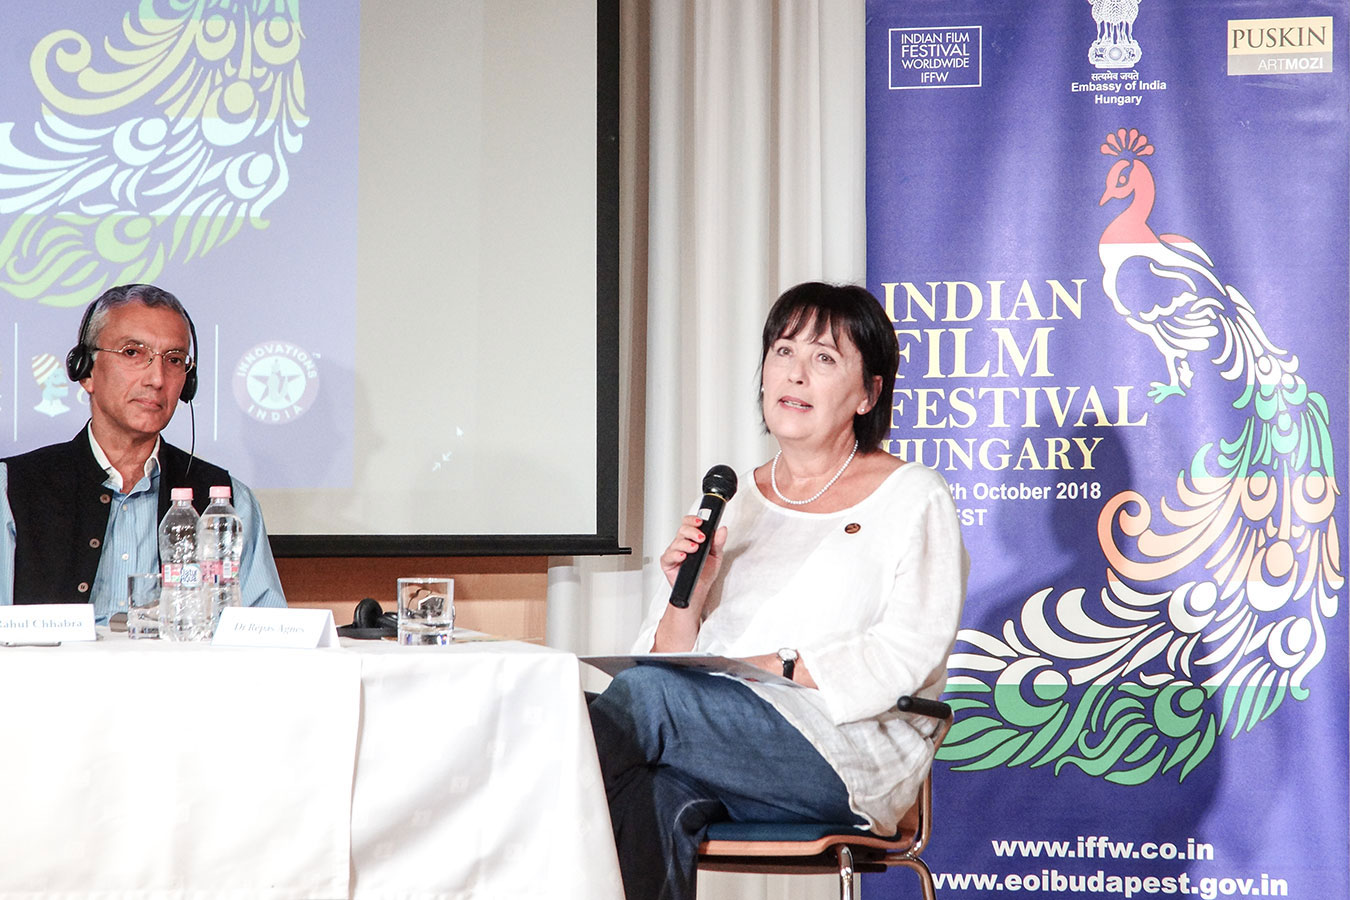 ind-indian-film-festival-2018-press-conference-dr-repas-agnes-budapest-film.jpg